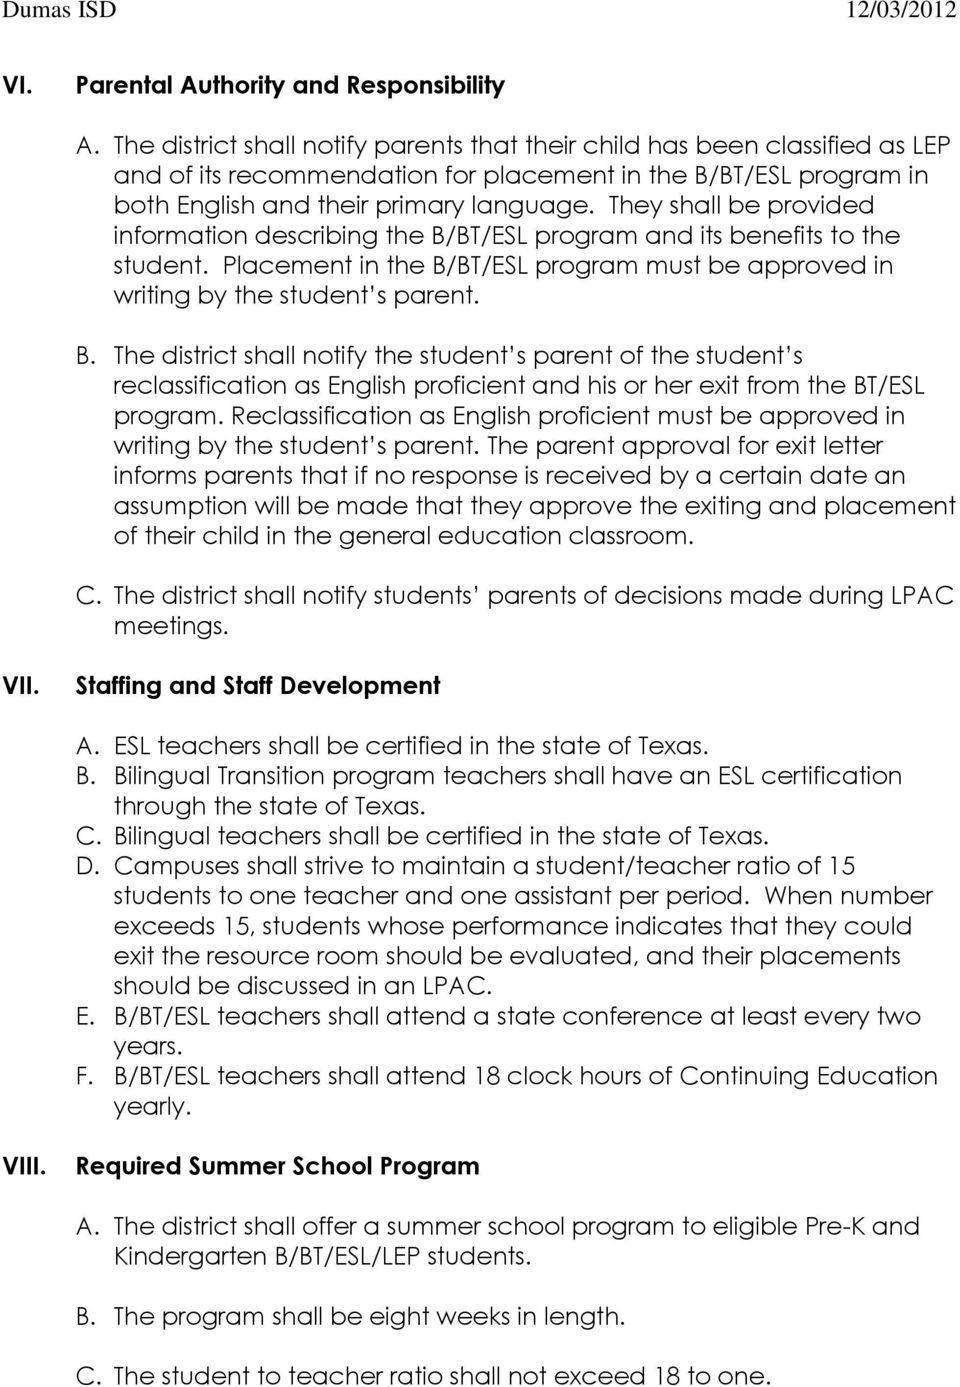 They shall be provided information describing the B/BT/ESL program and its benefits to the student. Placement in the B/BT/ESL program must be approved in writing by the student s parent. B. The district shall notify the student s parent of the student s reclassification as English proficient and his or her exit from the BT/ESL program.